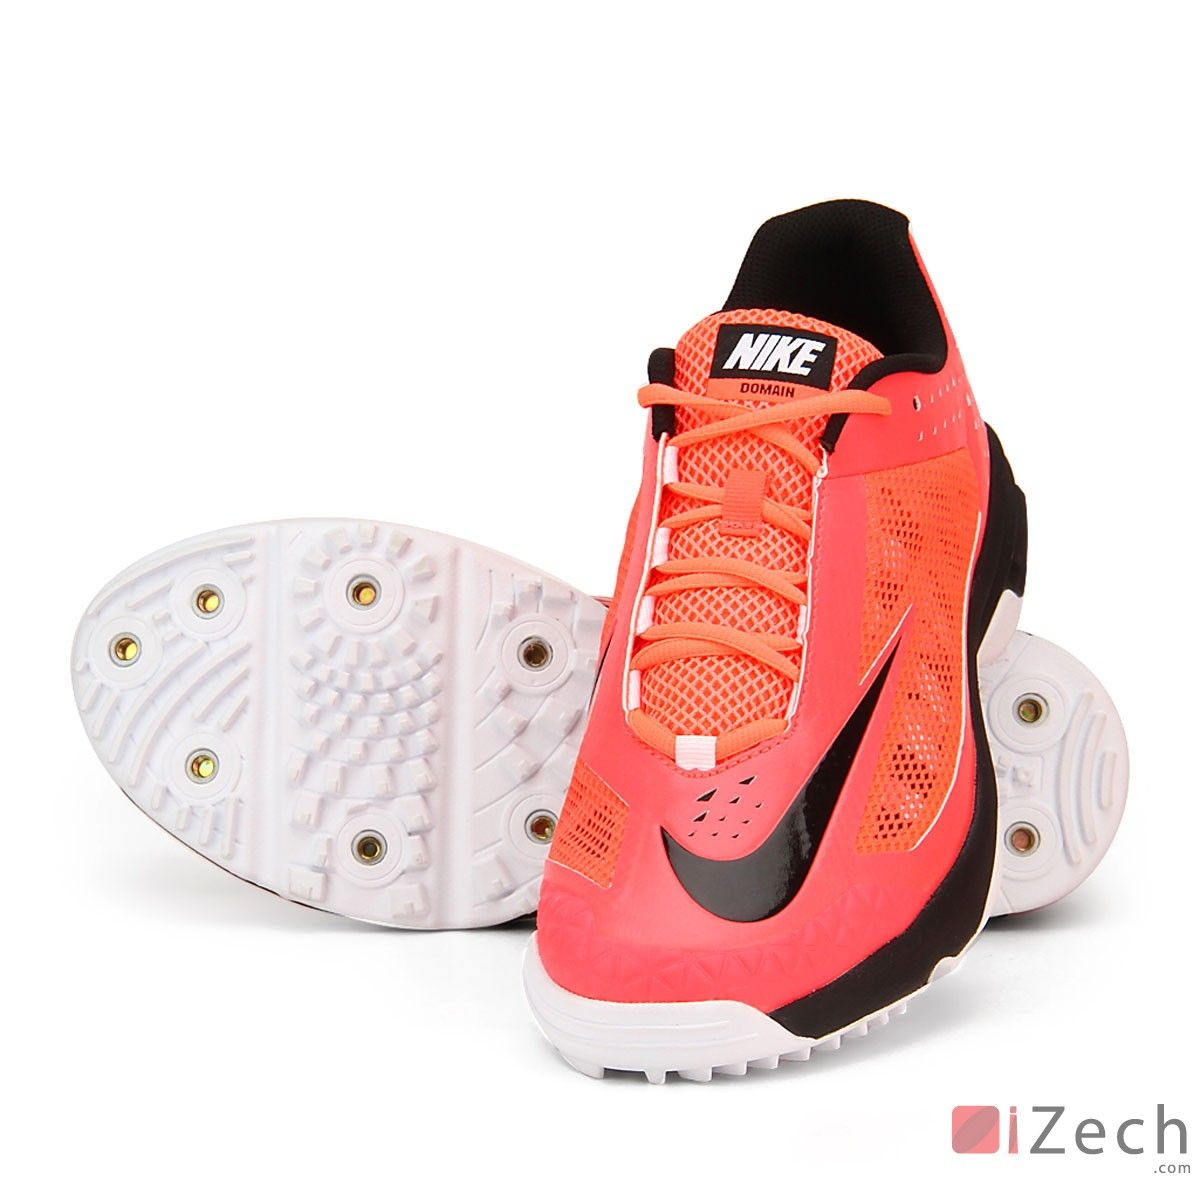 Nike Domain Pink Cricket Shoes  f09a7a364